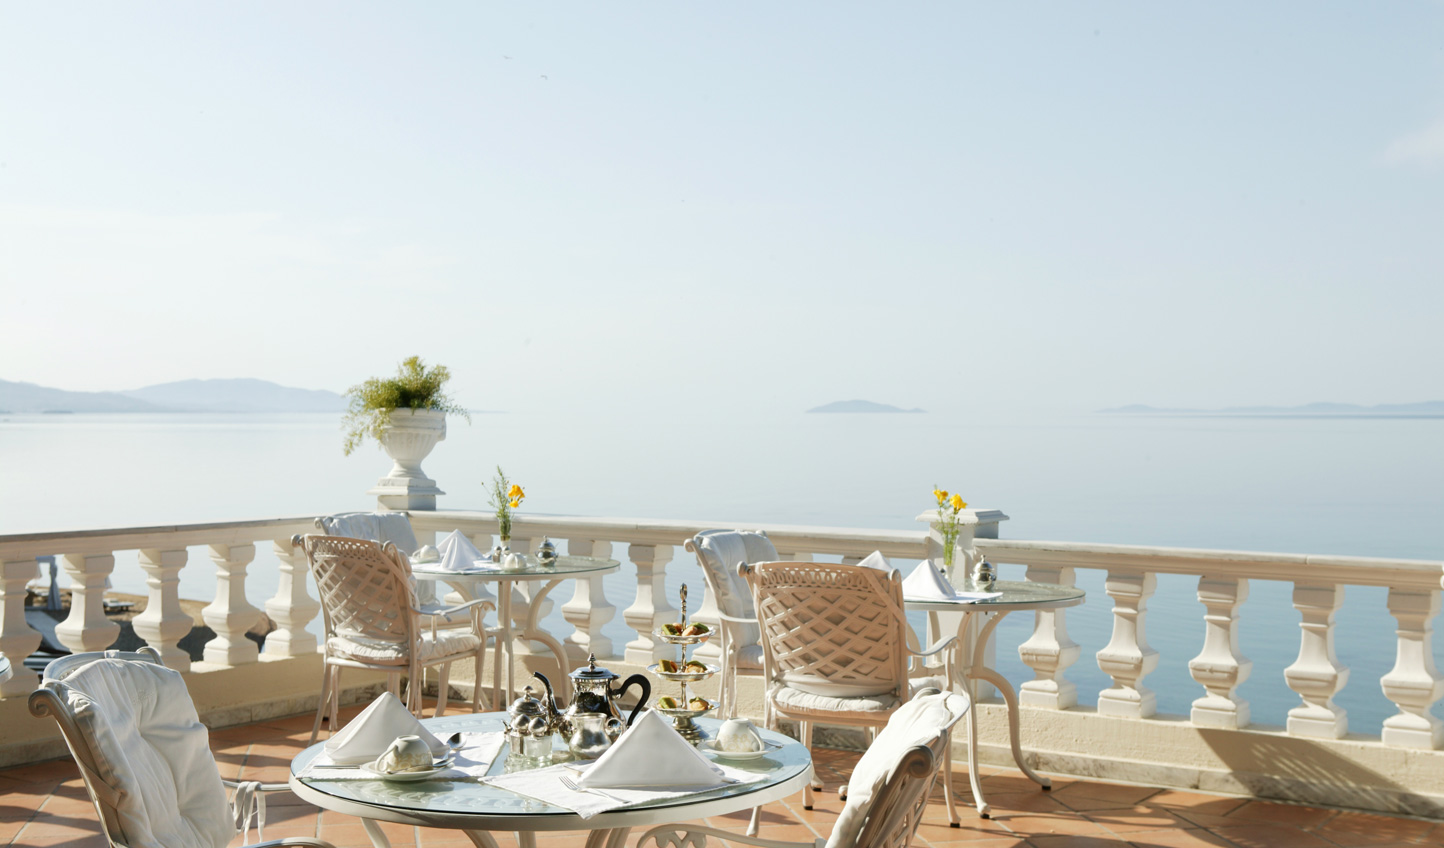 Breakfast with a view on the terrace